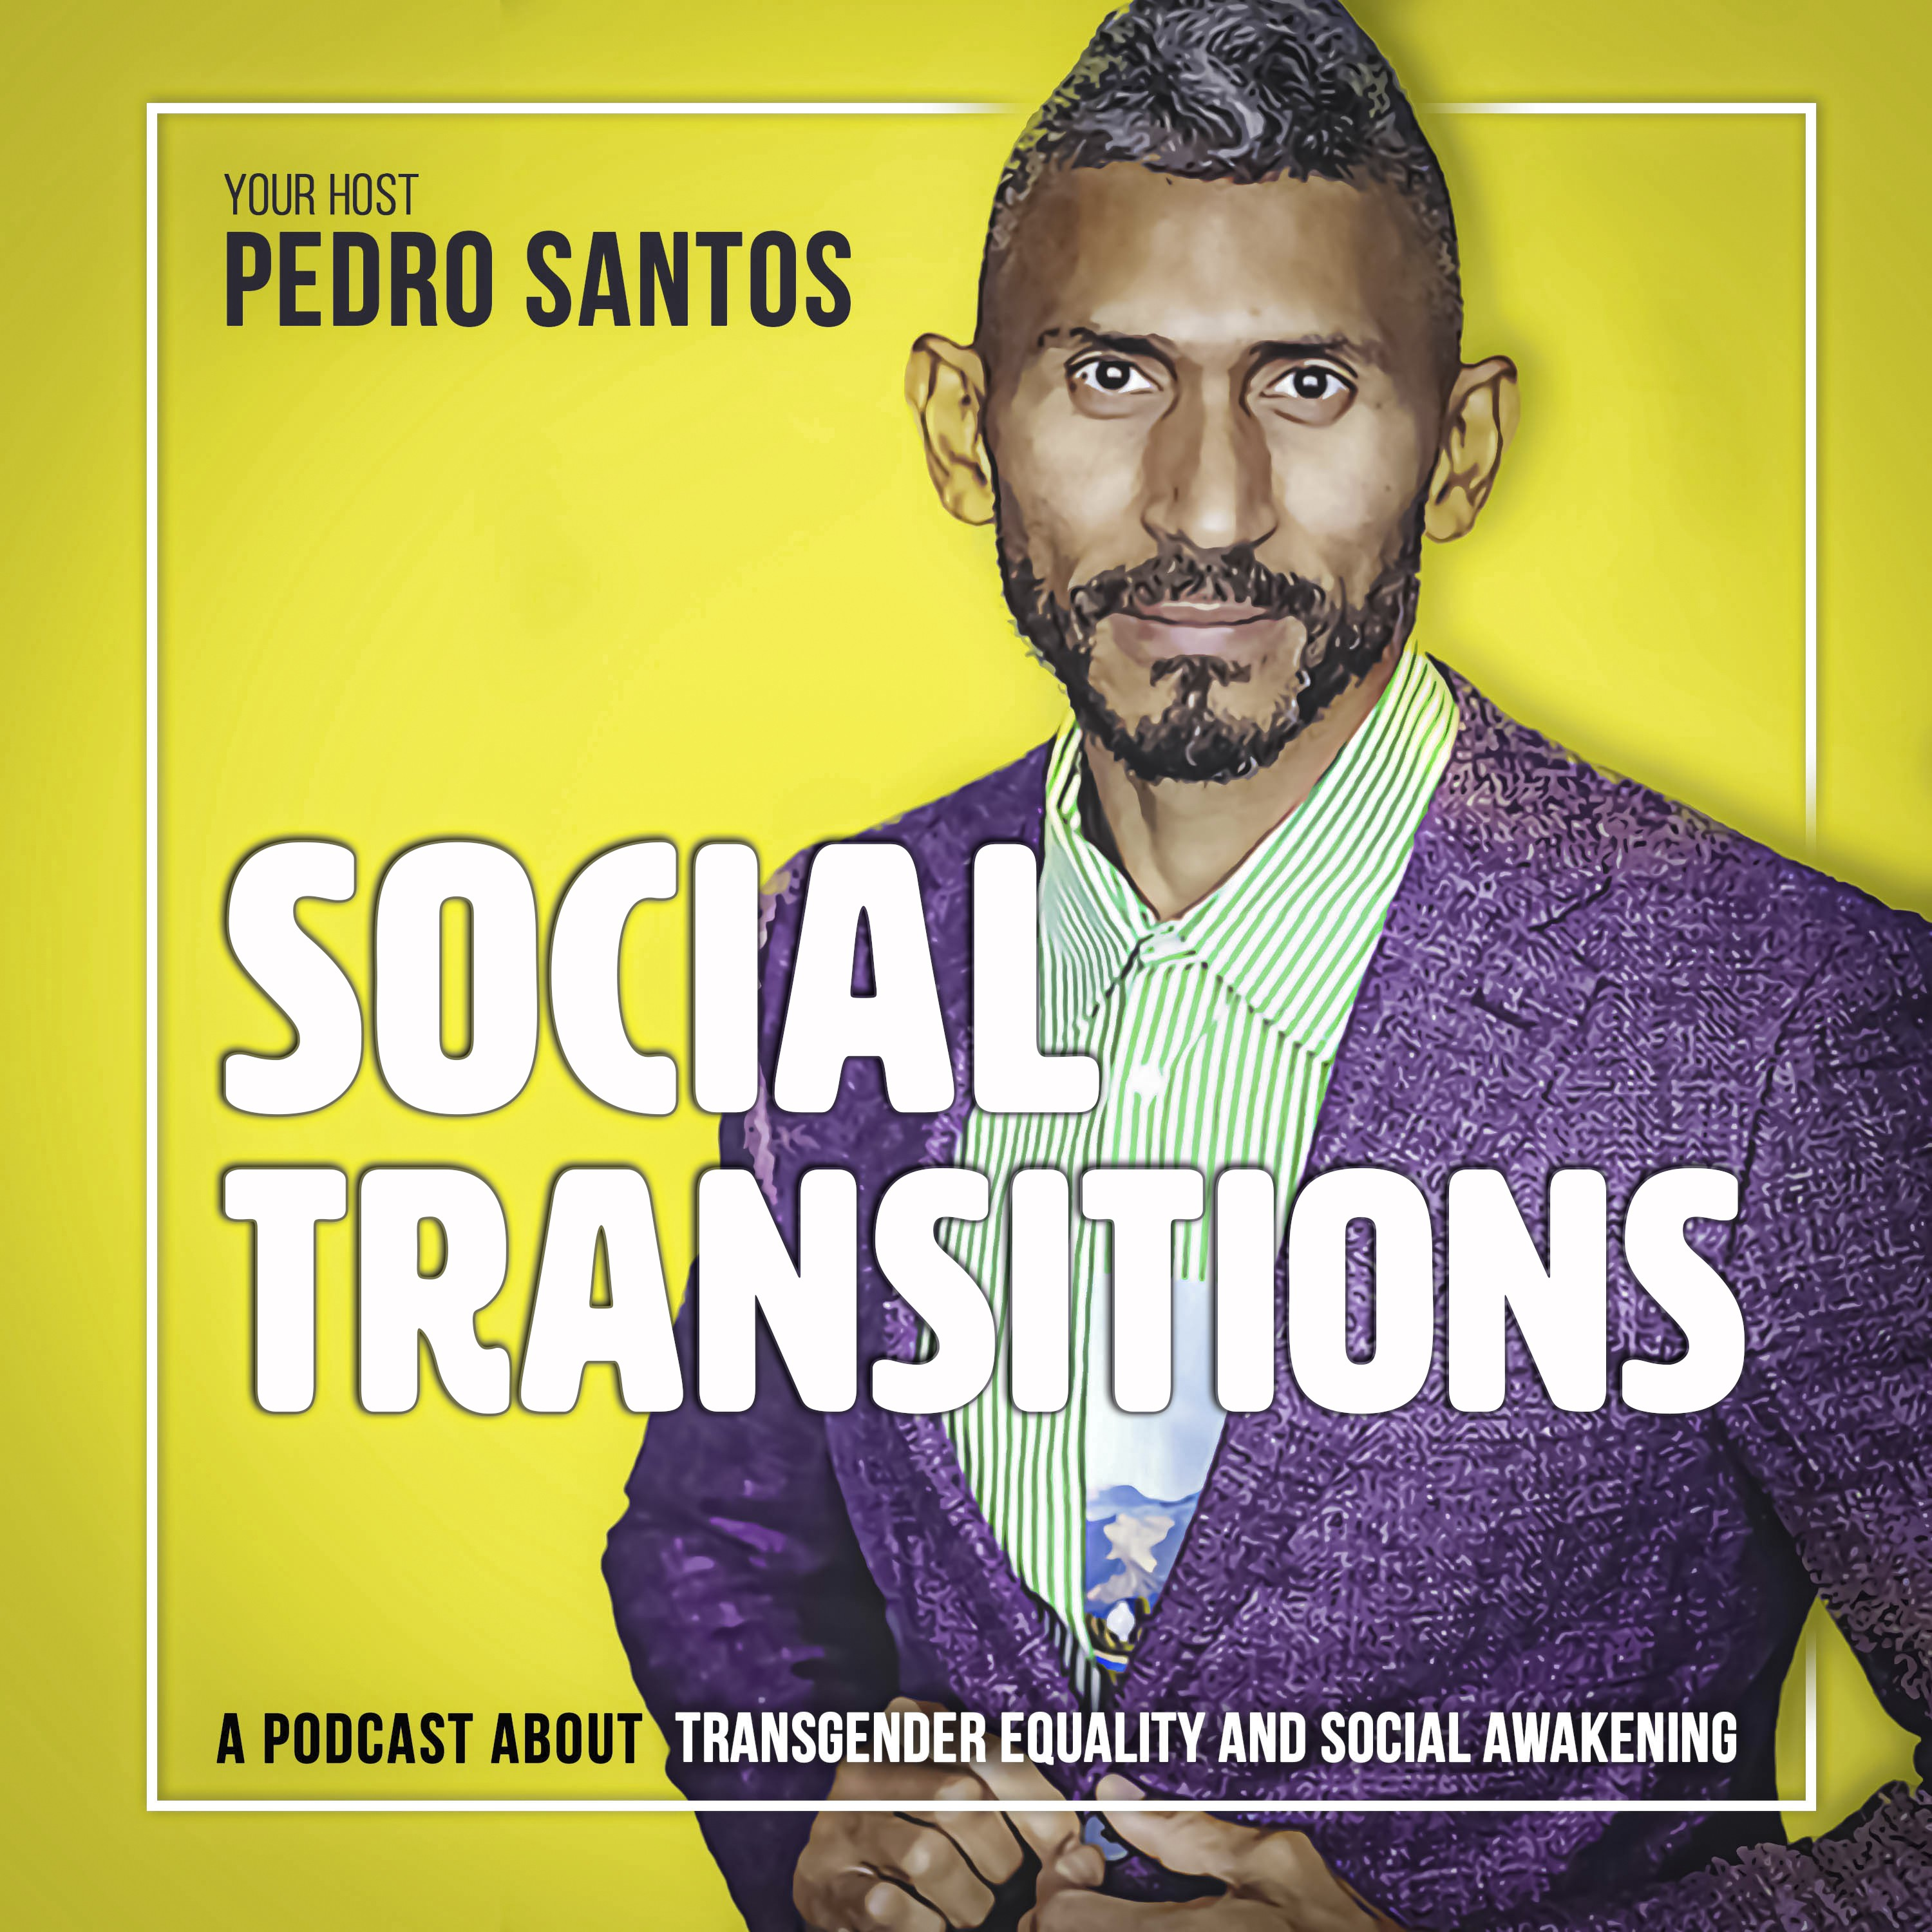 Podcast about Cisgender male who wants help create a better place for transgender community